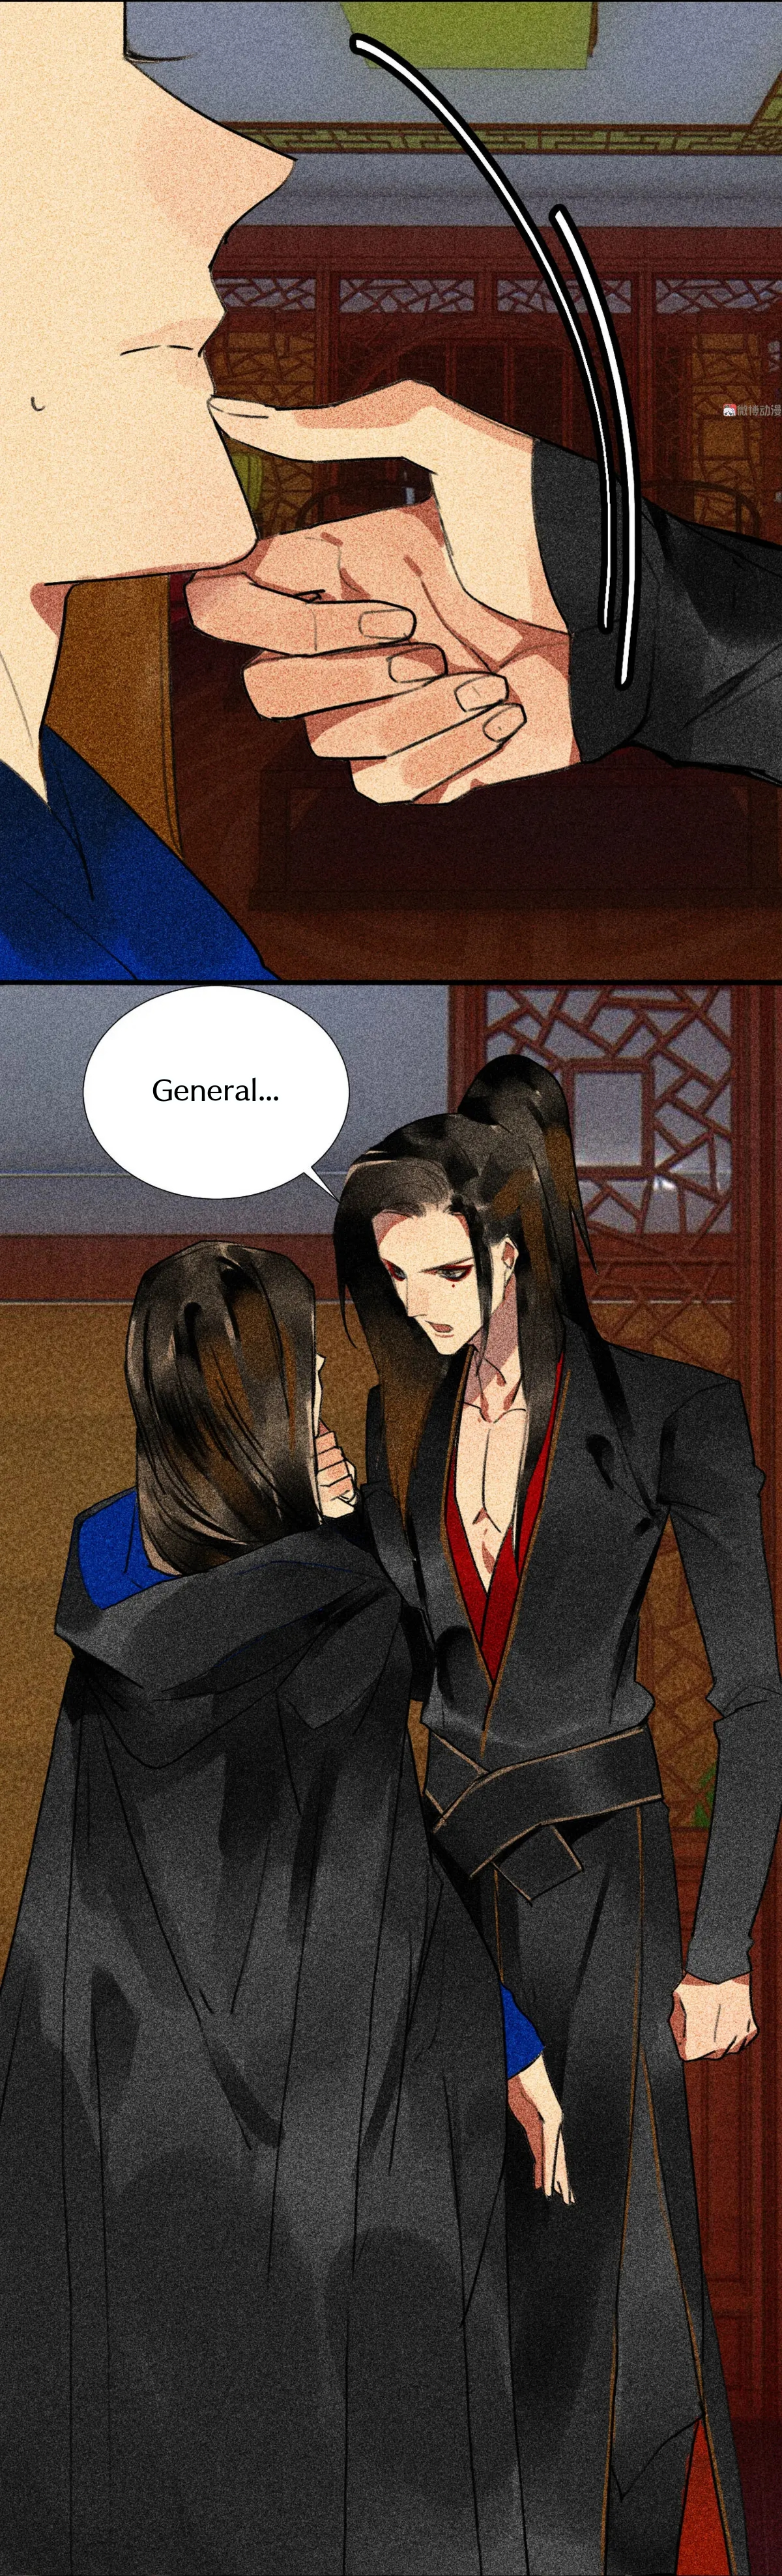 General Please Stay - chapter 34 - #3